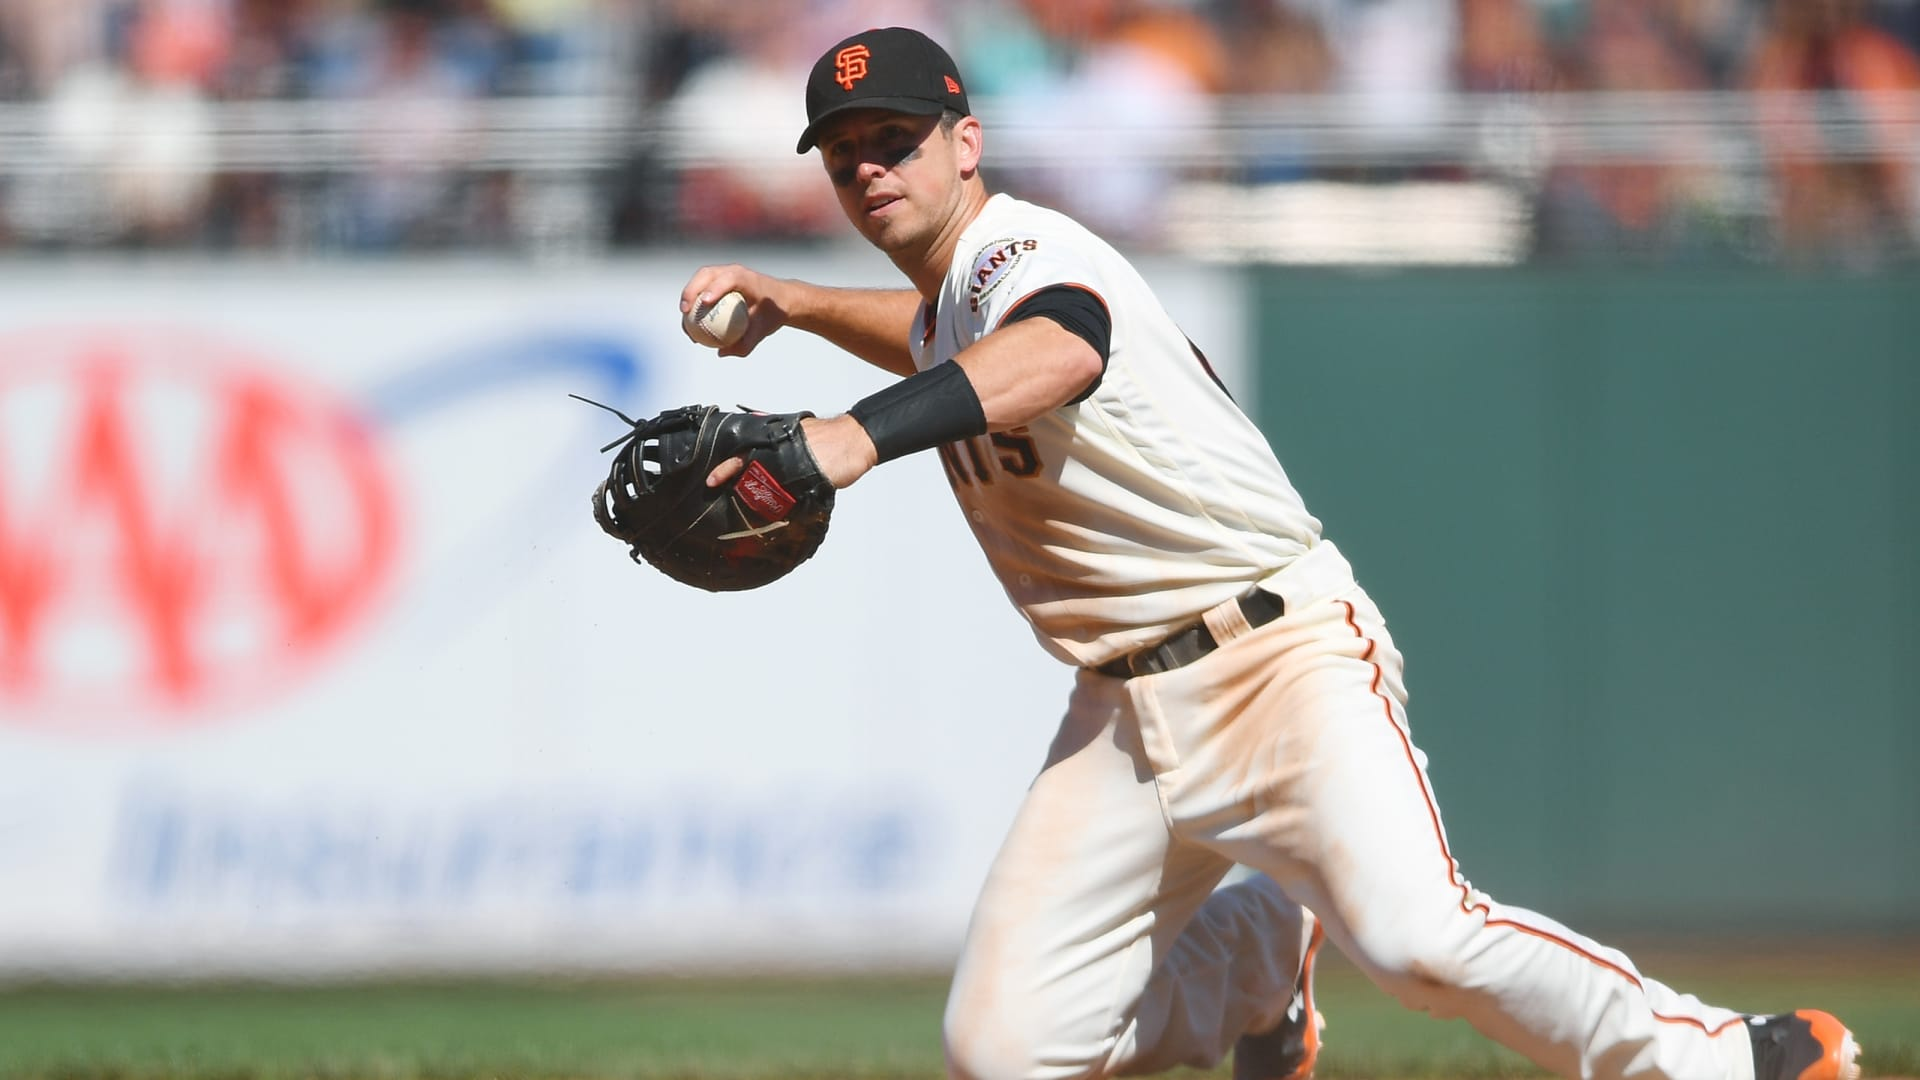 Giants: Will 2020 be the year Buster Posey moves to first base?